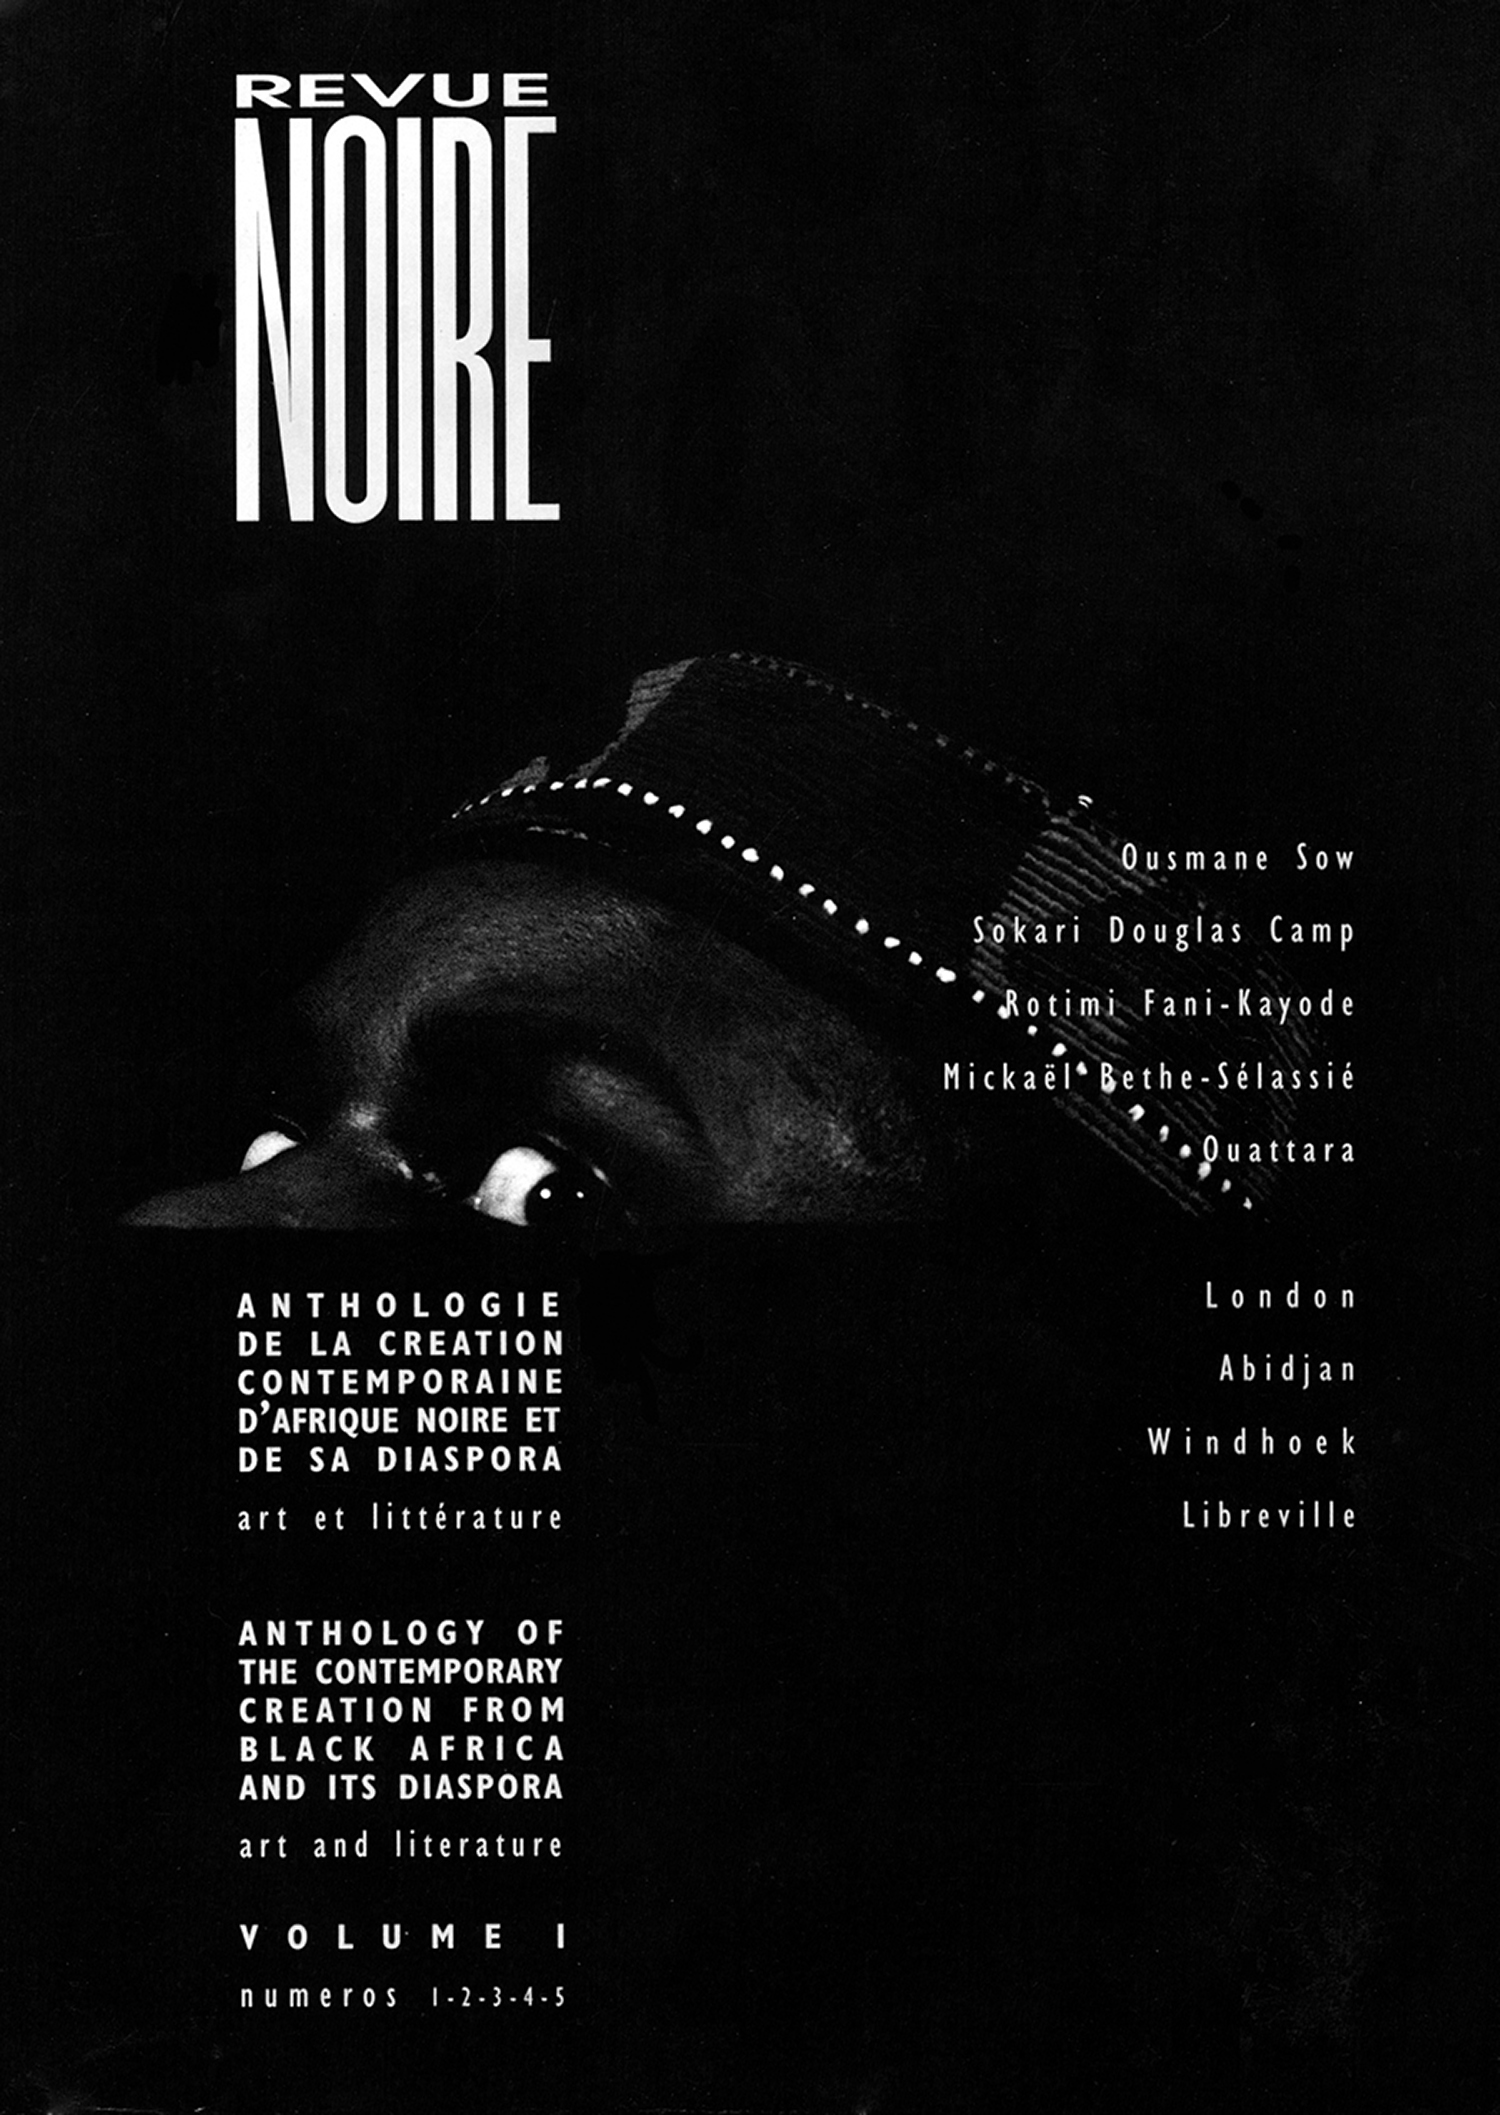 Book 'Anthology Revue Noire Magazine Vol. 01' issues 01 to 05